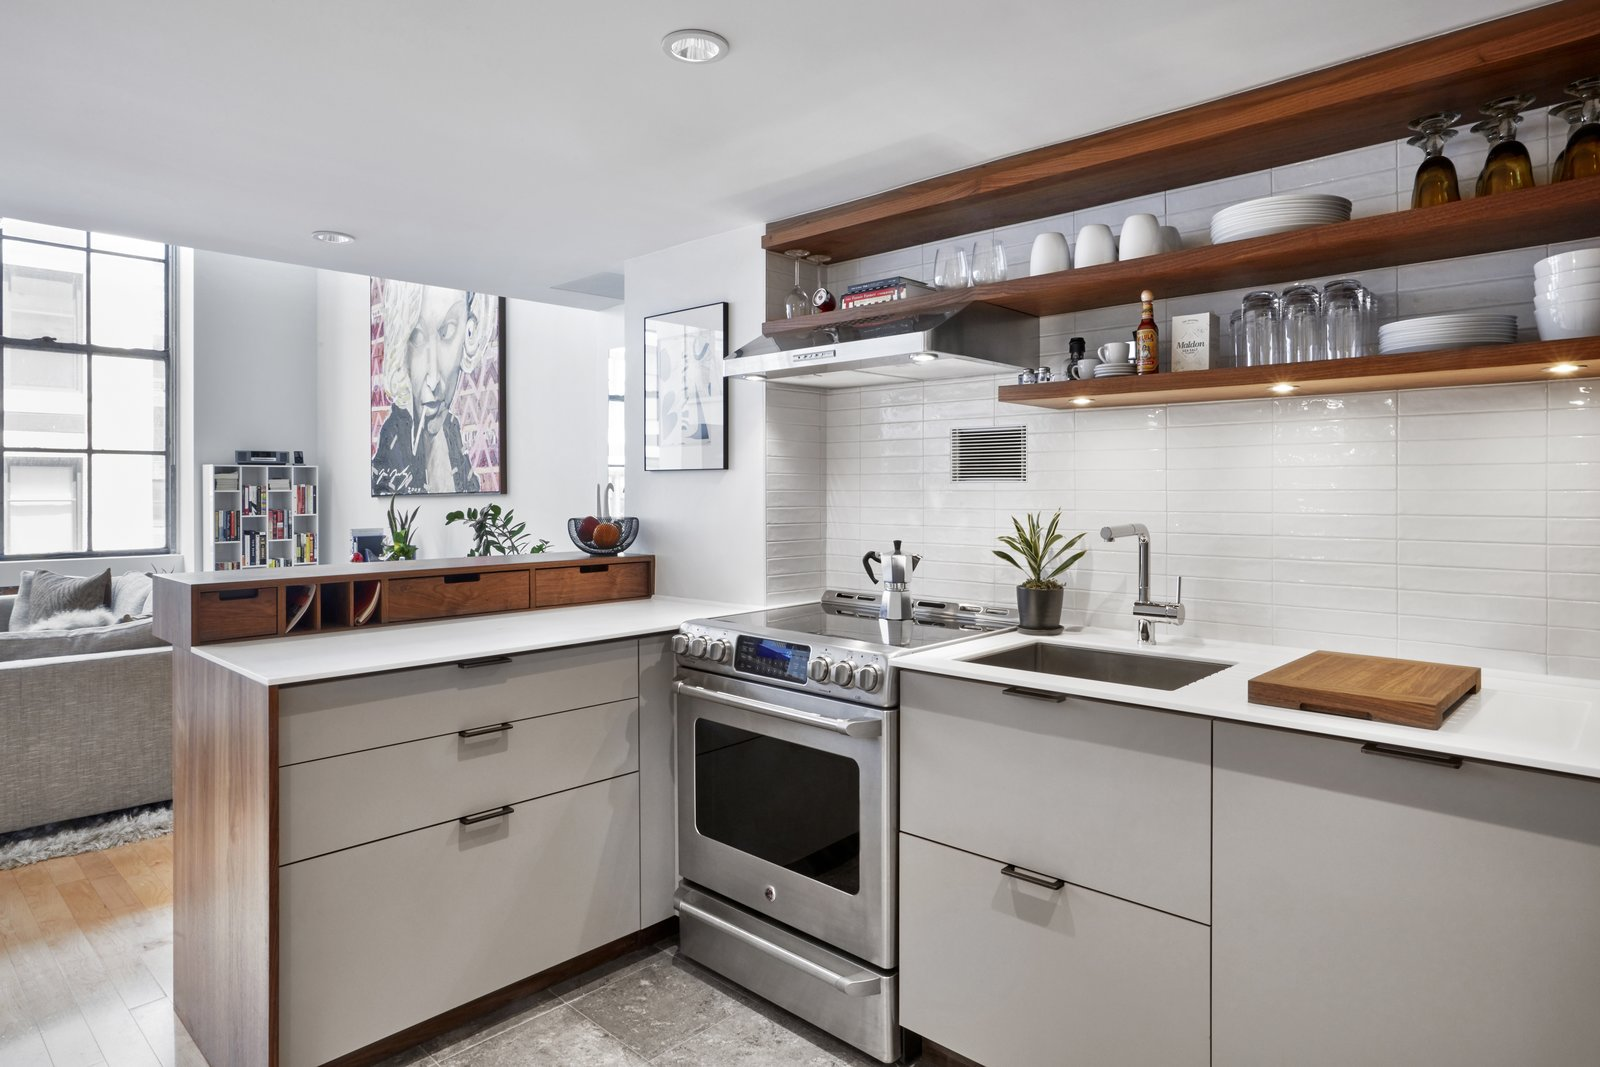 Kitchen Cooktop by GE Hood by Faber Sink and Faucet by Blanco  4th Ave./Union Square Apartment